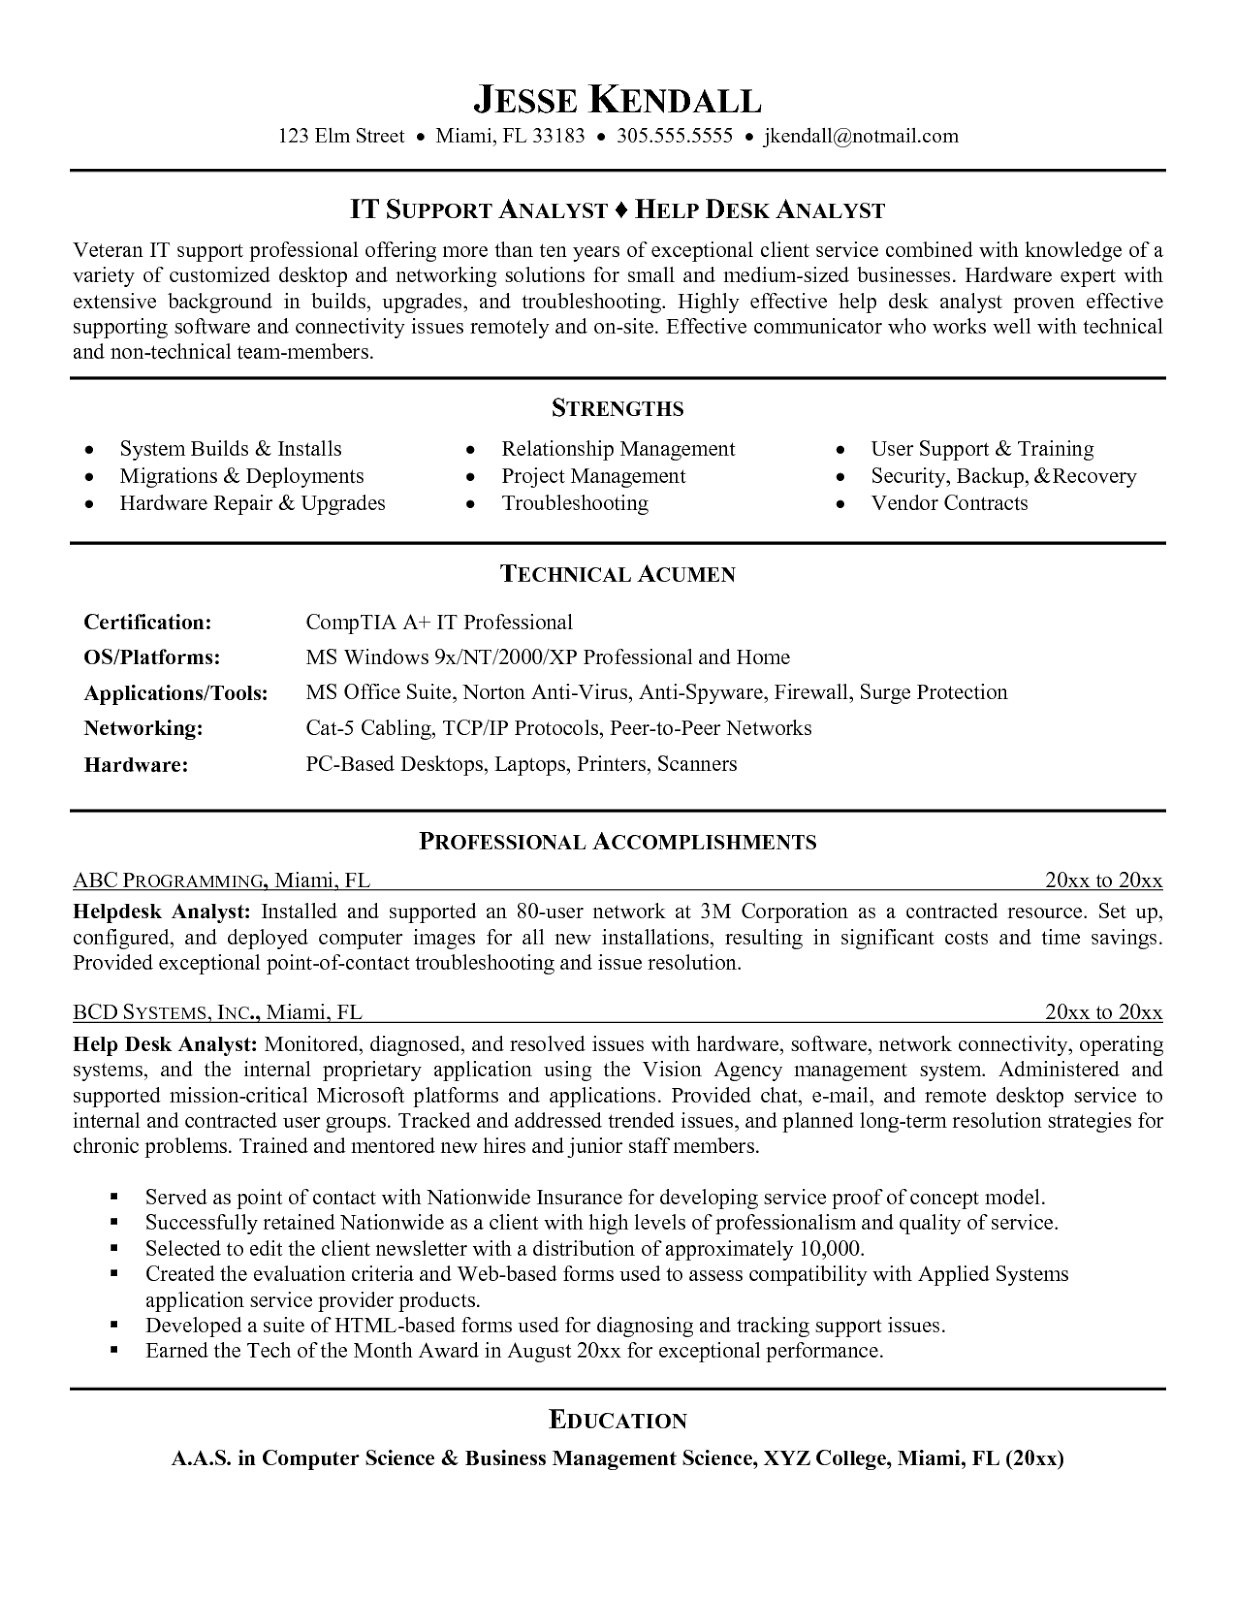 help desk resume sample hostgarcia images of help desk technician resume free letter sample download pinterest - Help With A Resume Free